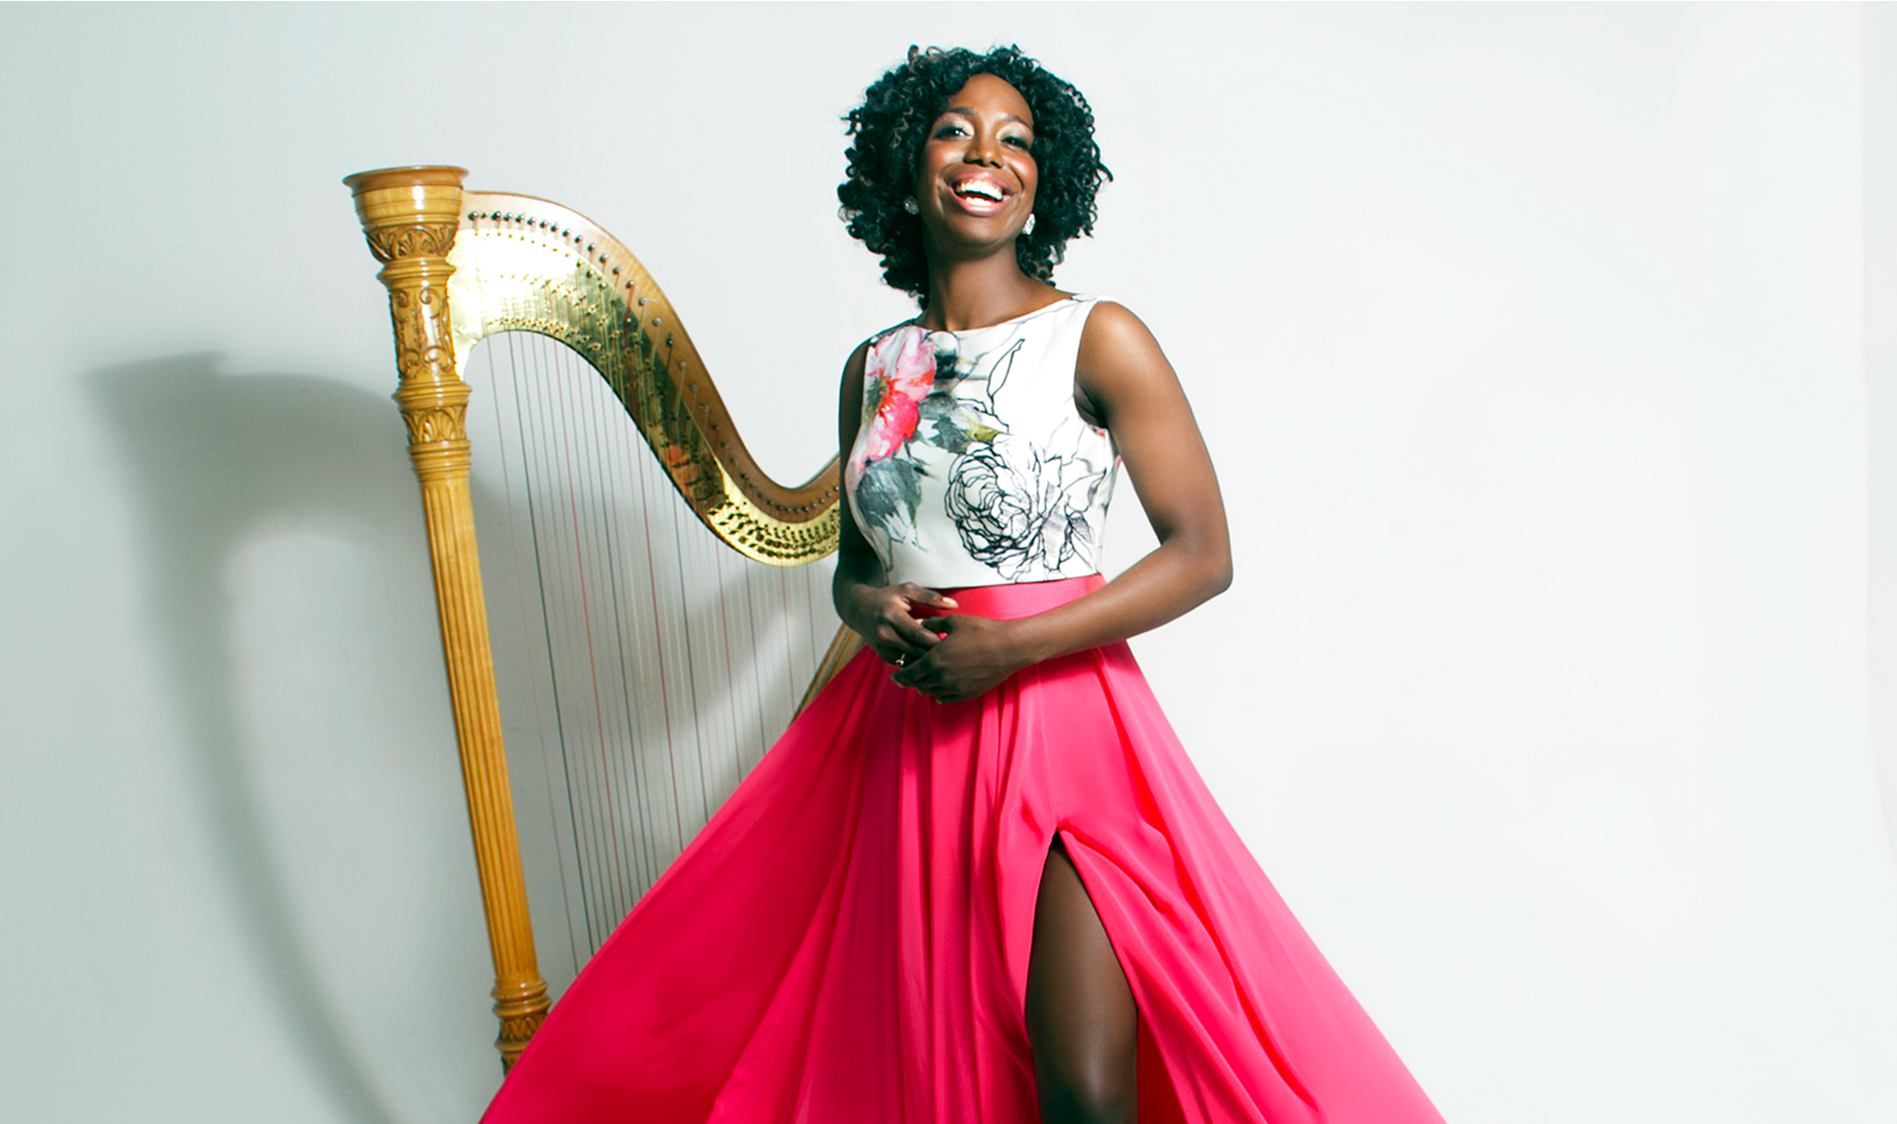 Brandee Younger Announces Multiple Spring Dates in NYC